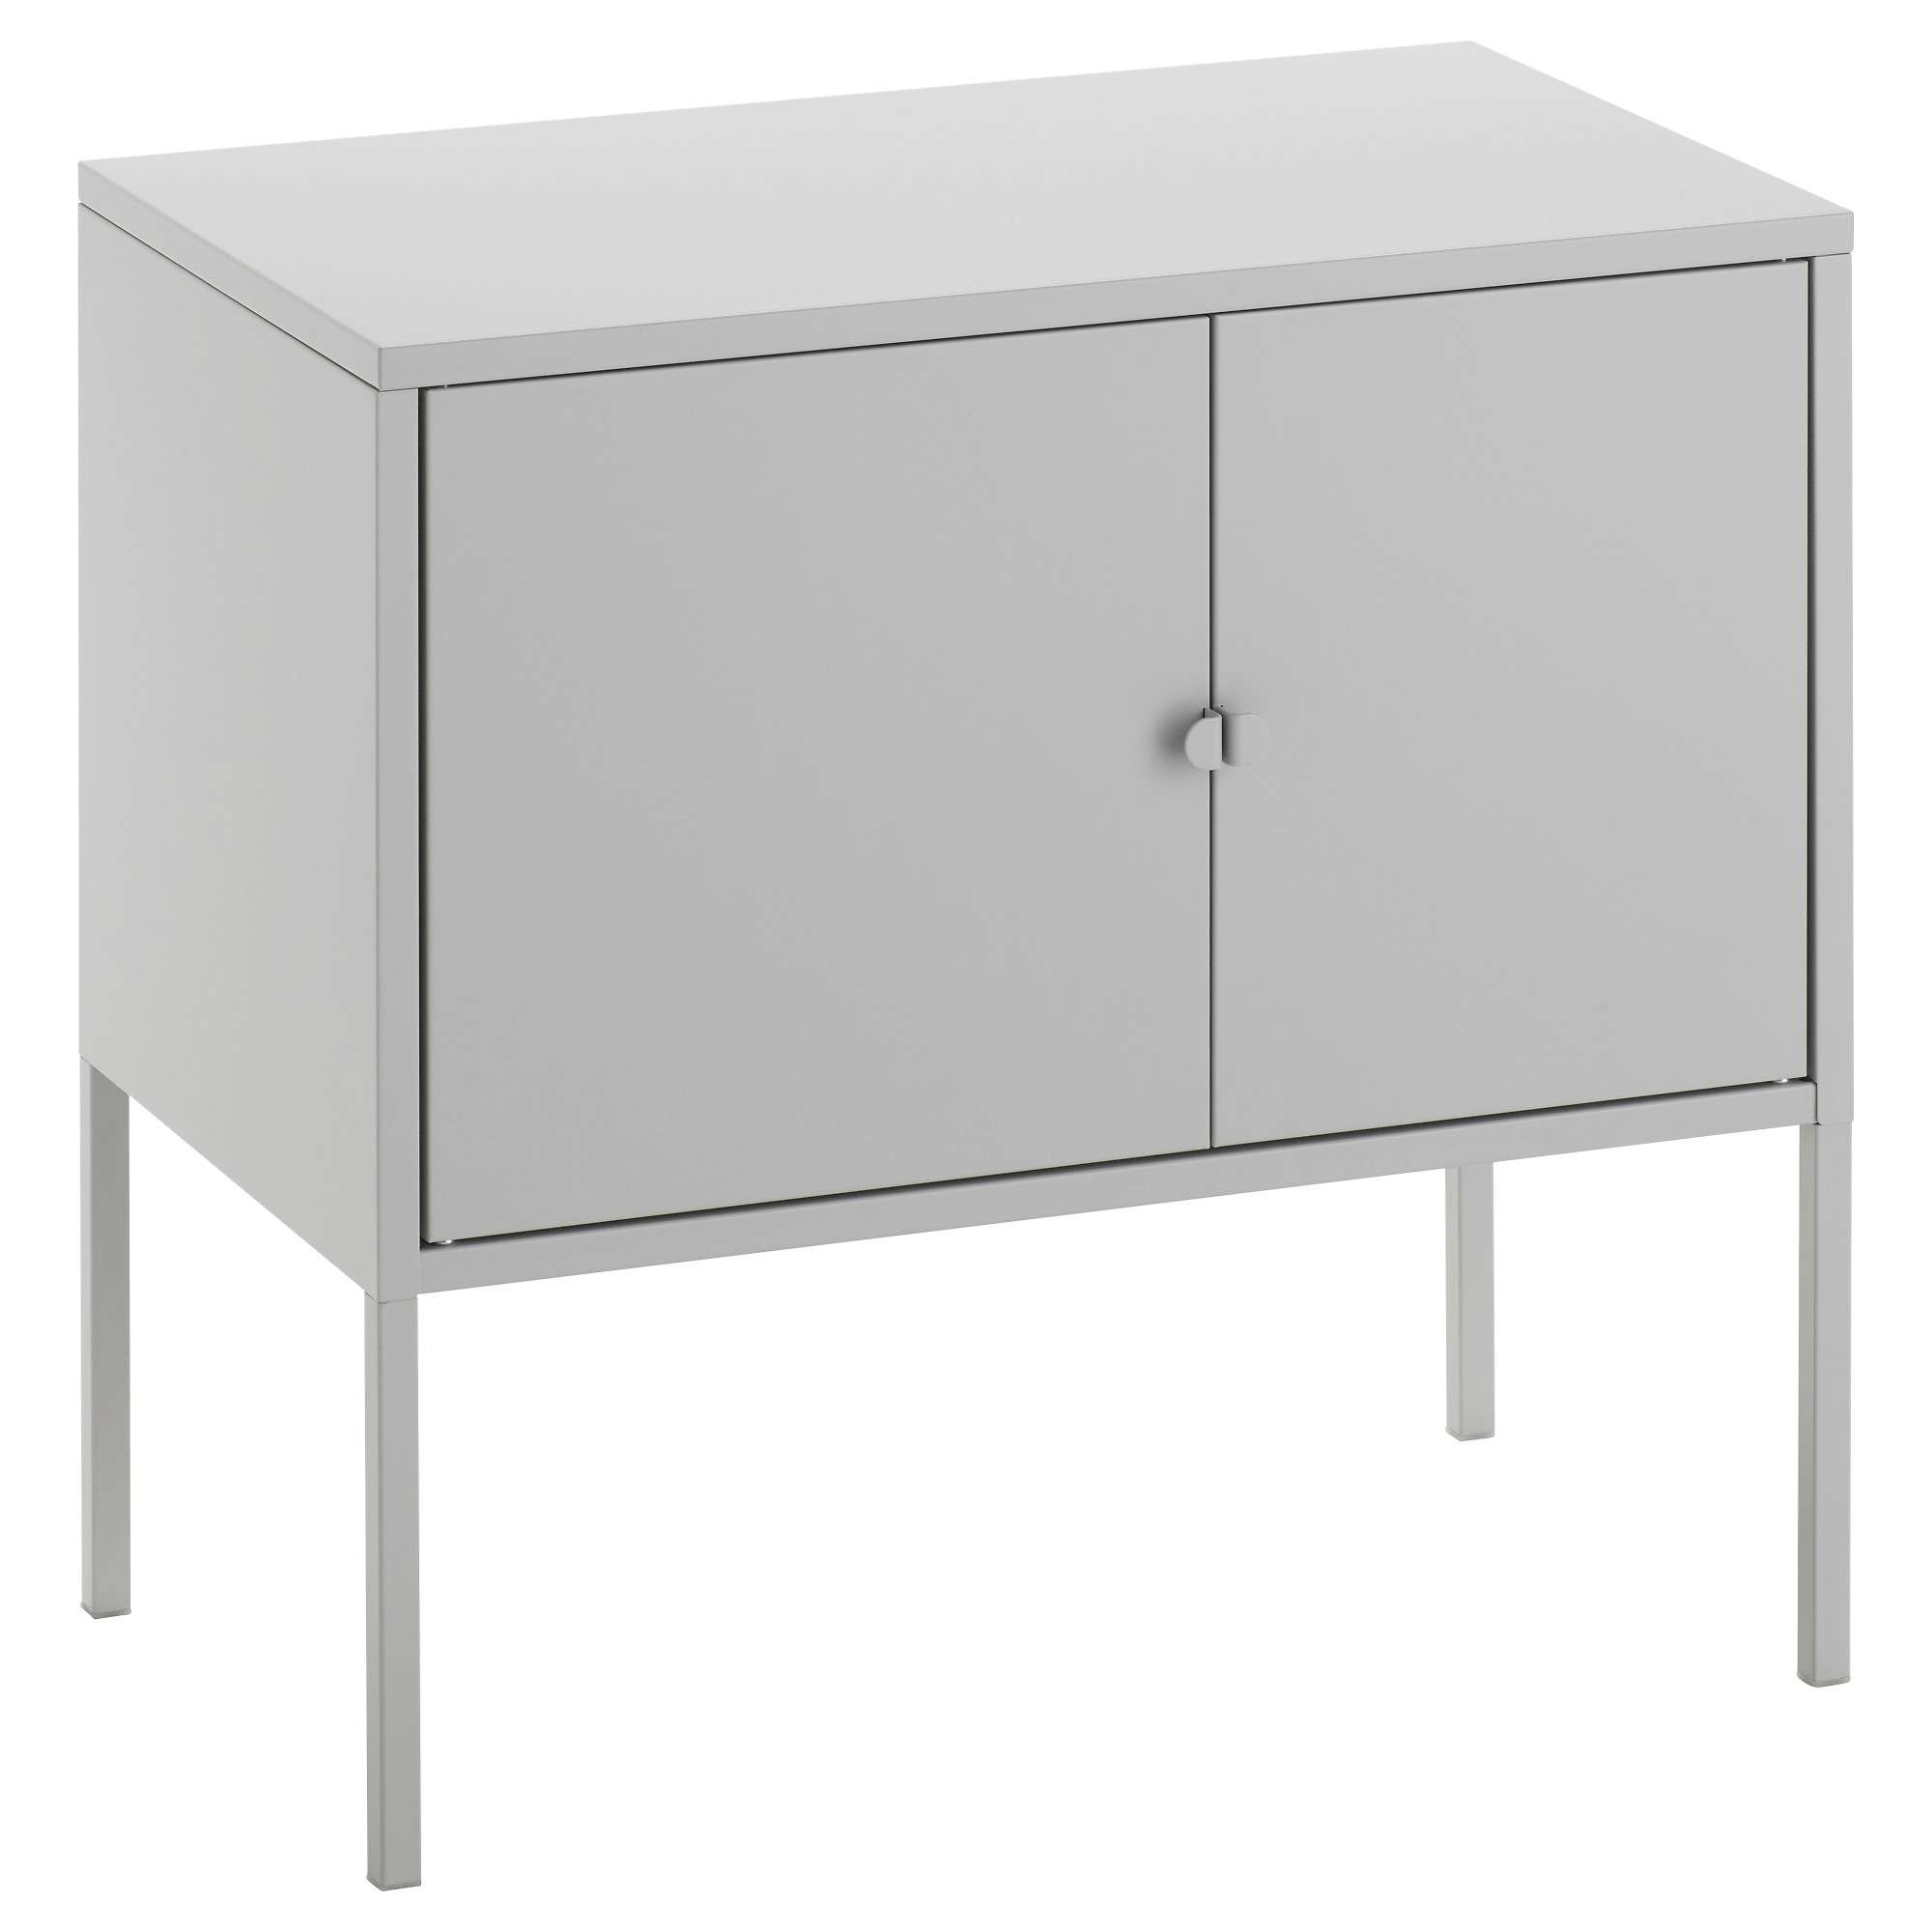 Cabinets & Sideboards – Ikea With Regard To Ikea Sideboards (View 14 of 20)